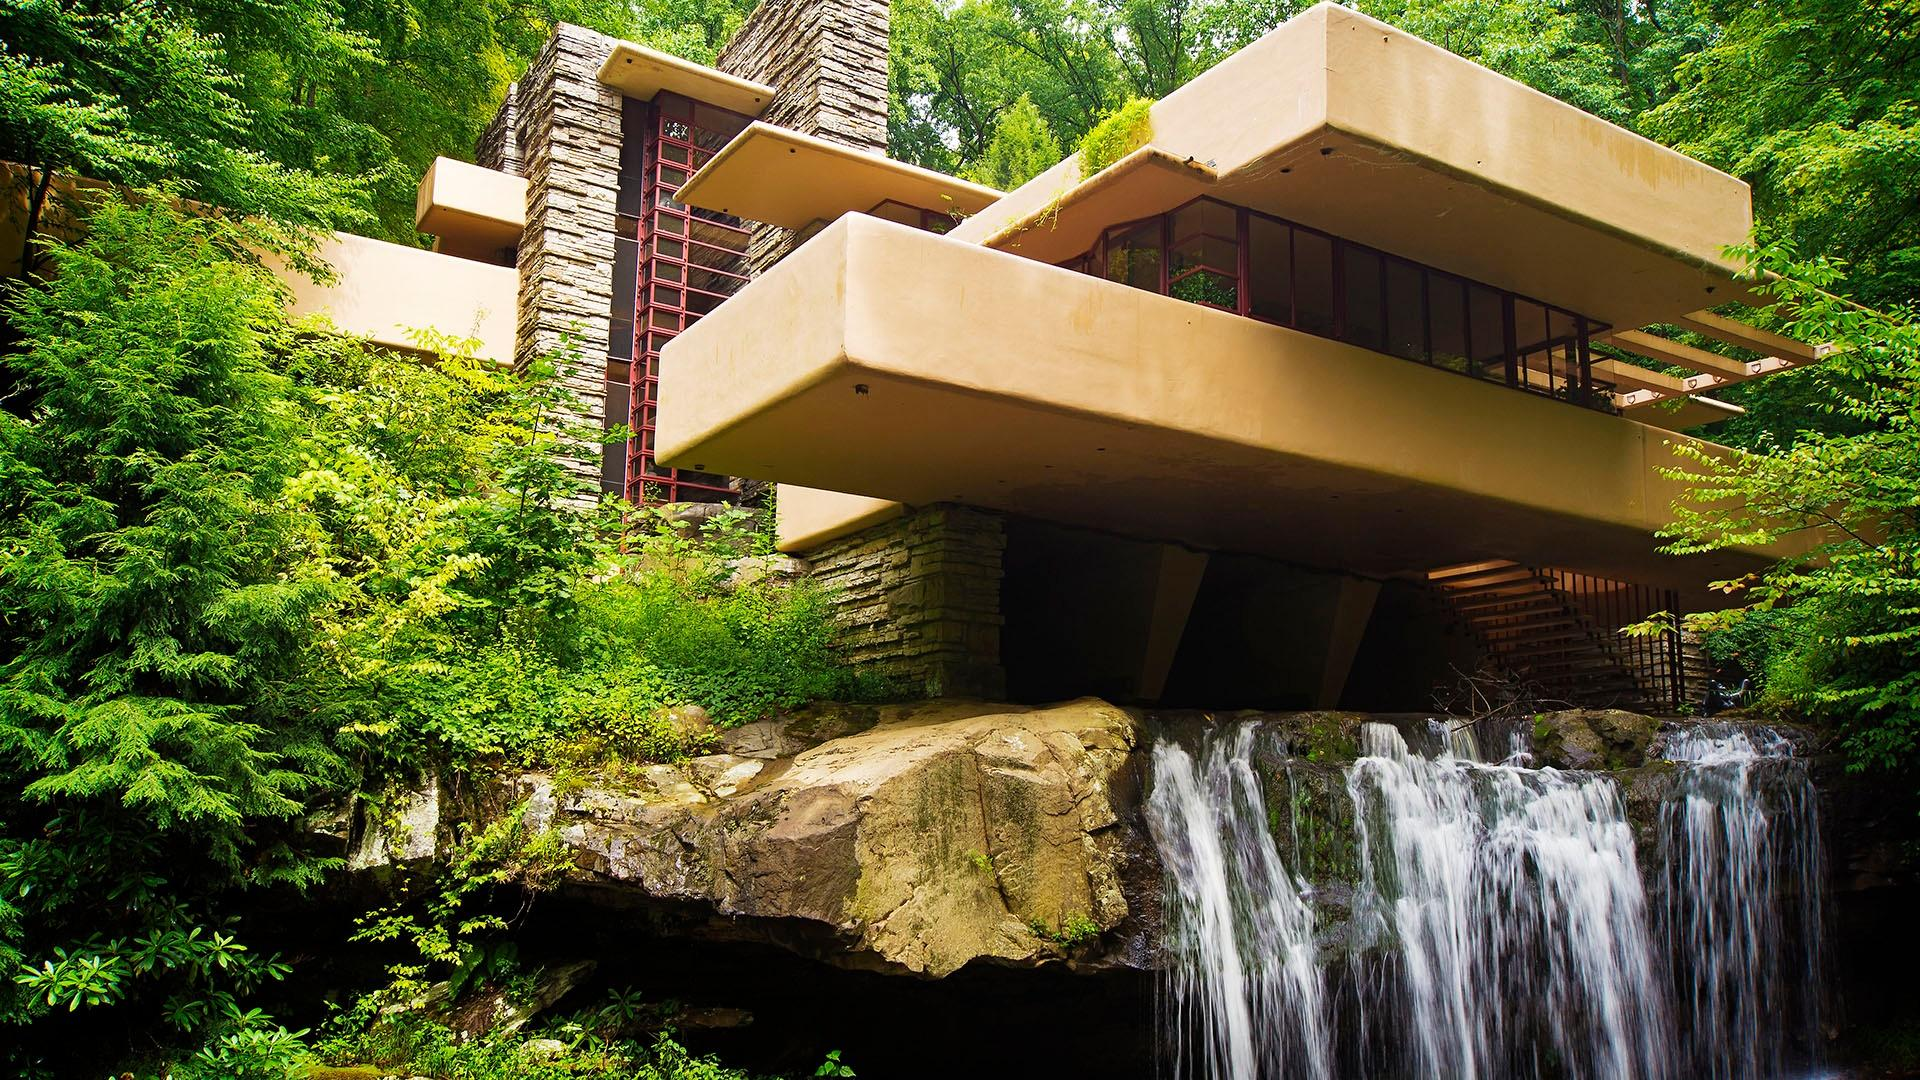 Frank Lloyd Wright Falling Water Wallpaper Video Homes Fallingwater Mill Run Pa Watch 10 That